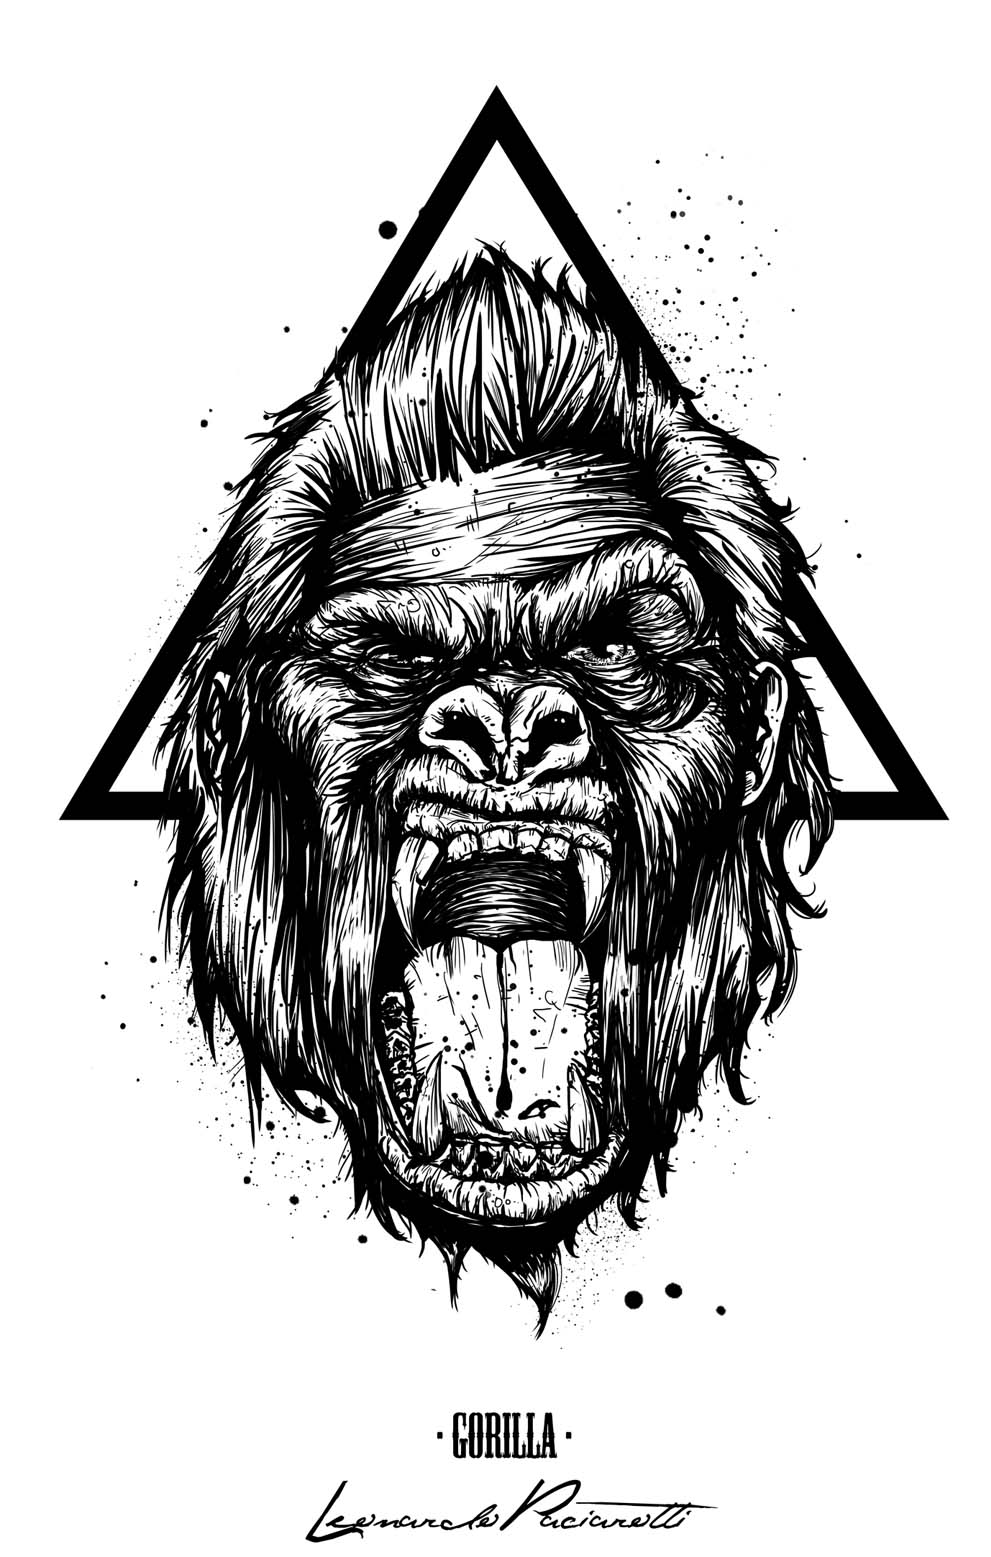 angry gorilla head drawing - photo #12